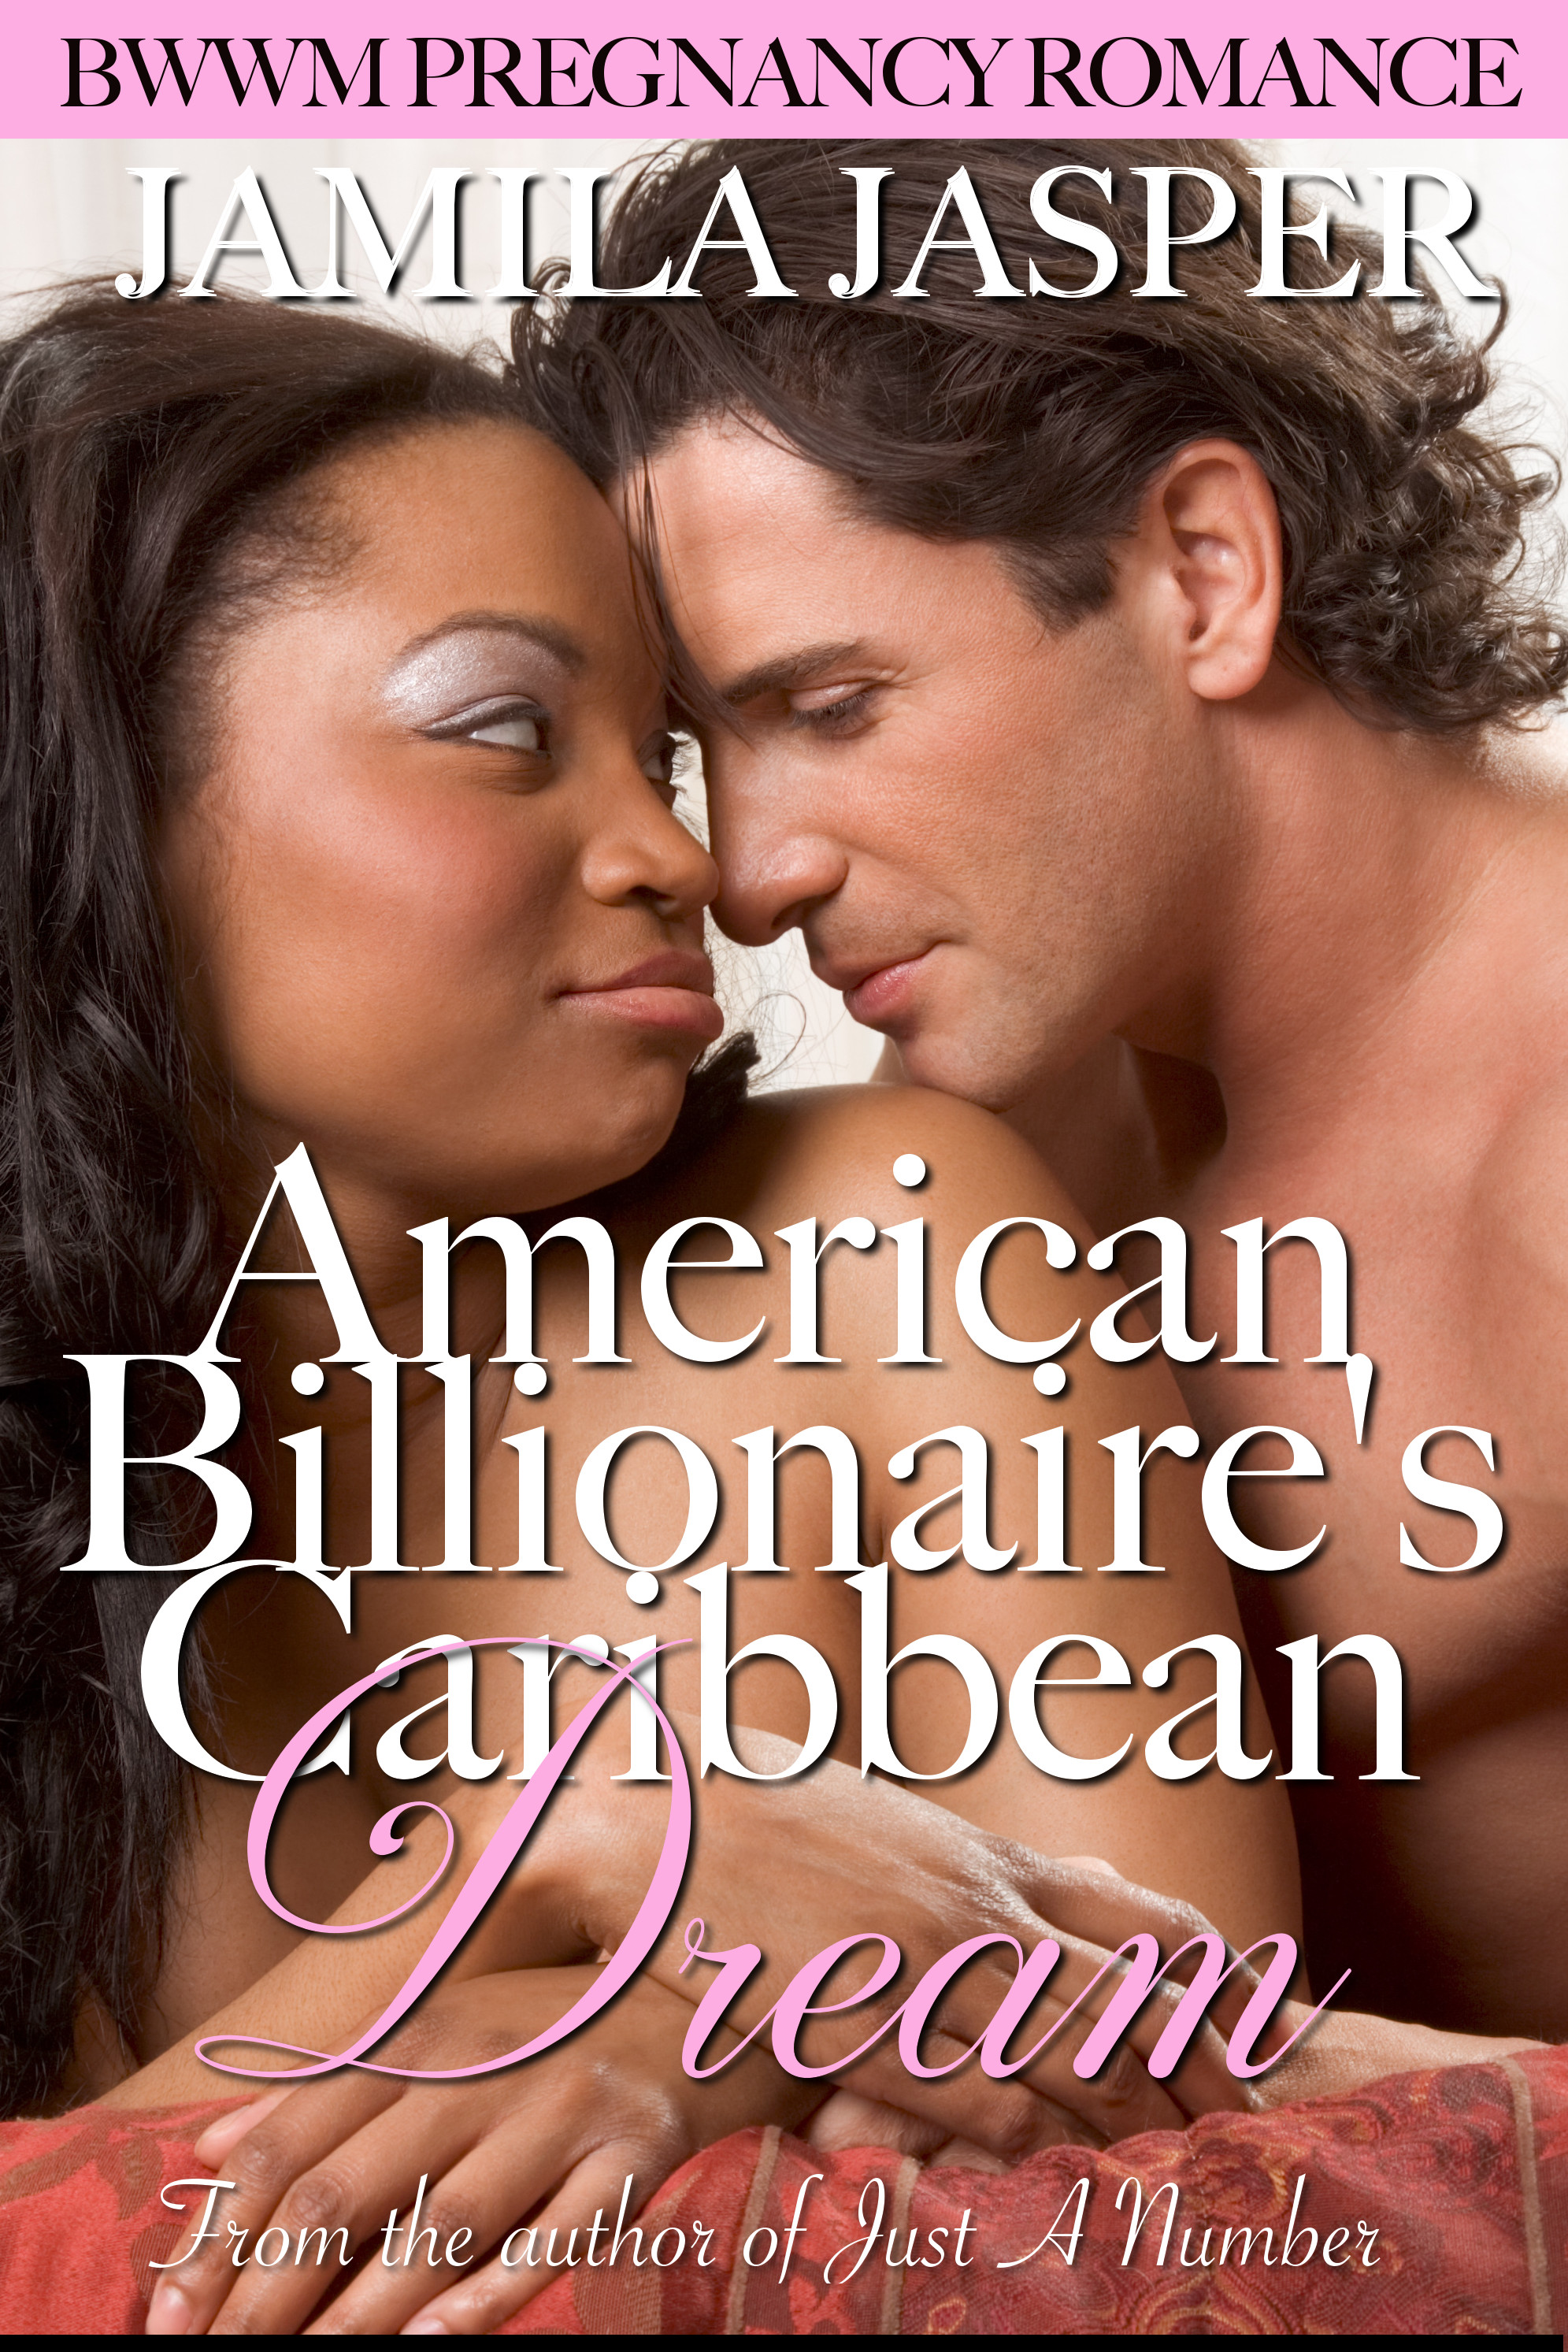 Romance Novel Excerpts - American Billionaire's Caribbean Dream